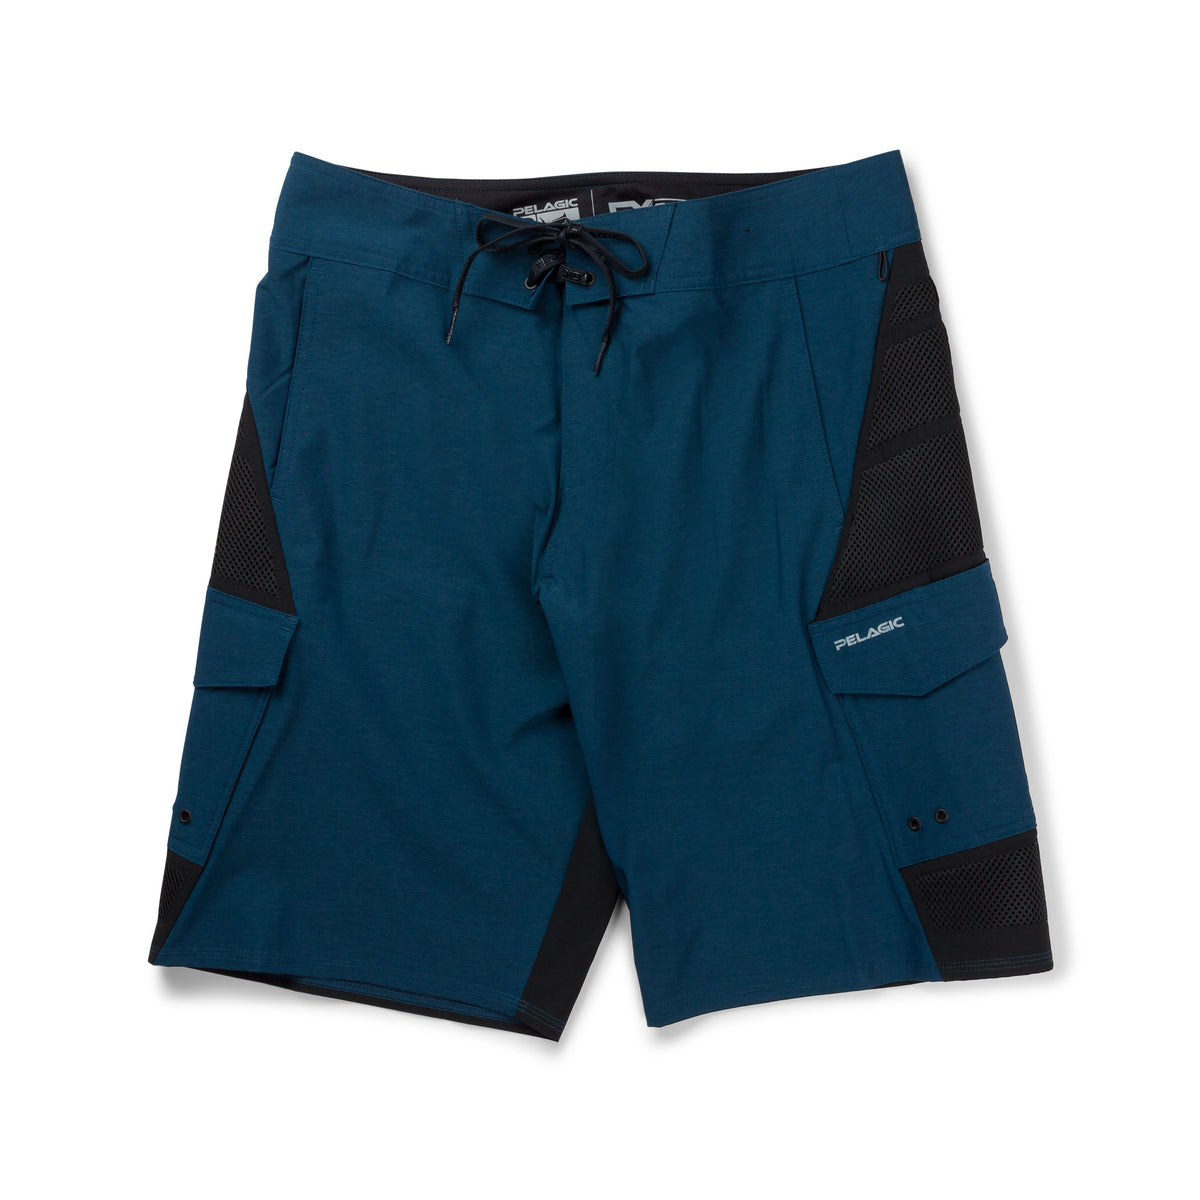 FX-90 Tactical Fishing Shorts Big Image - 1